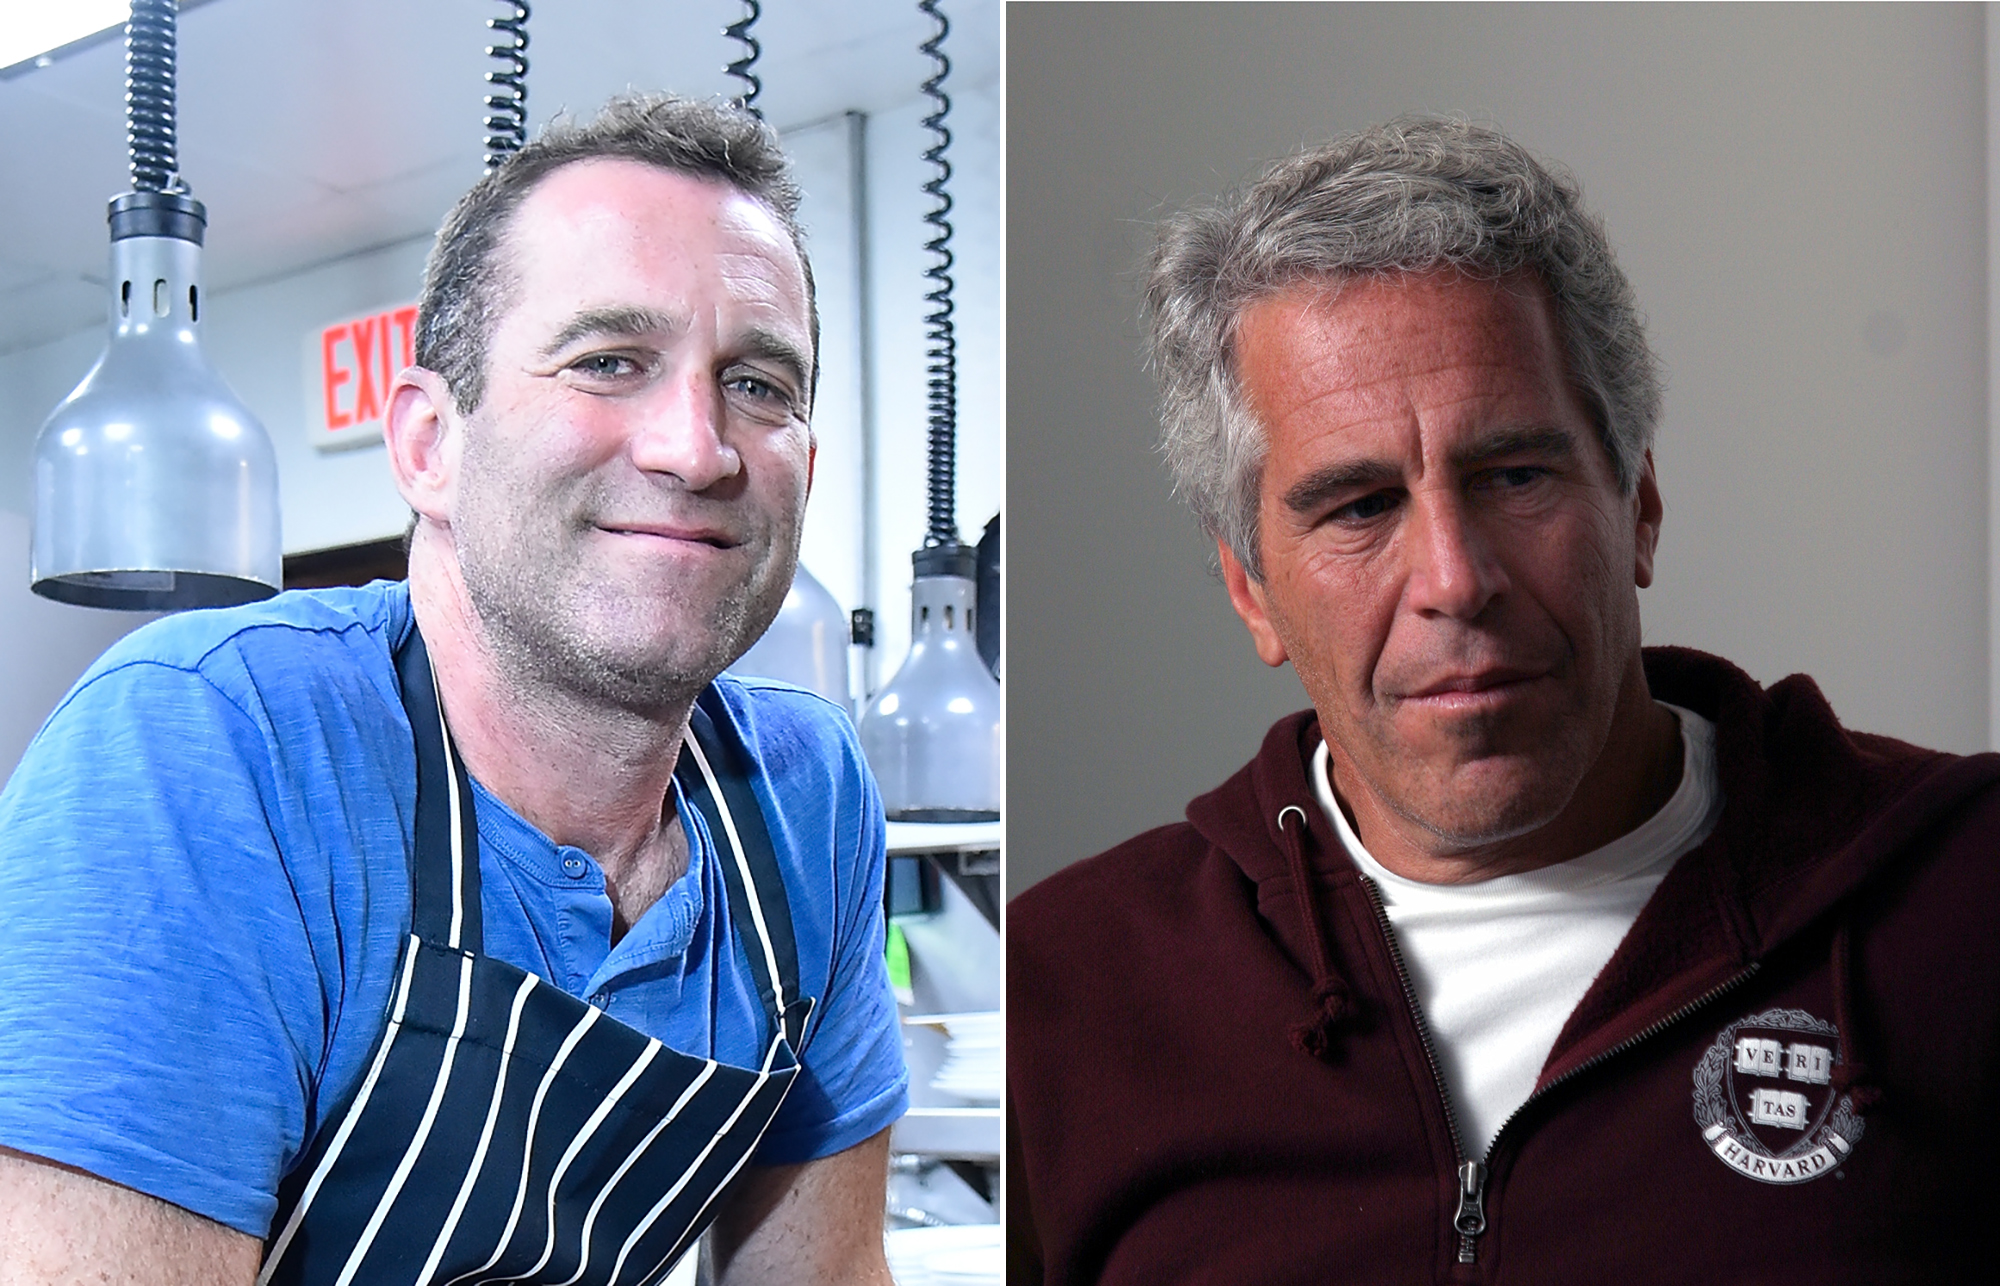 Chef Adam Perry Lang in a blue t-shirt and Jeffrey Epstein in a red Harvard pull-over.